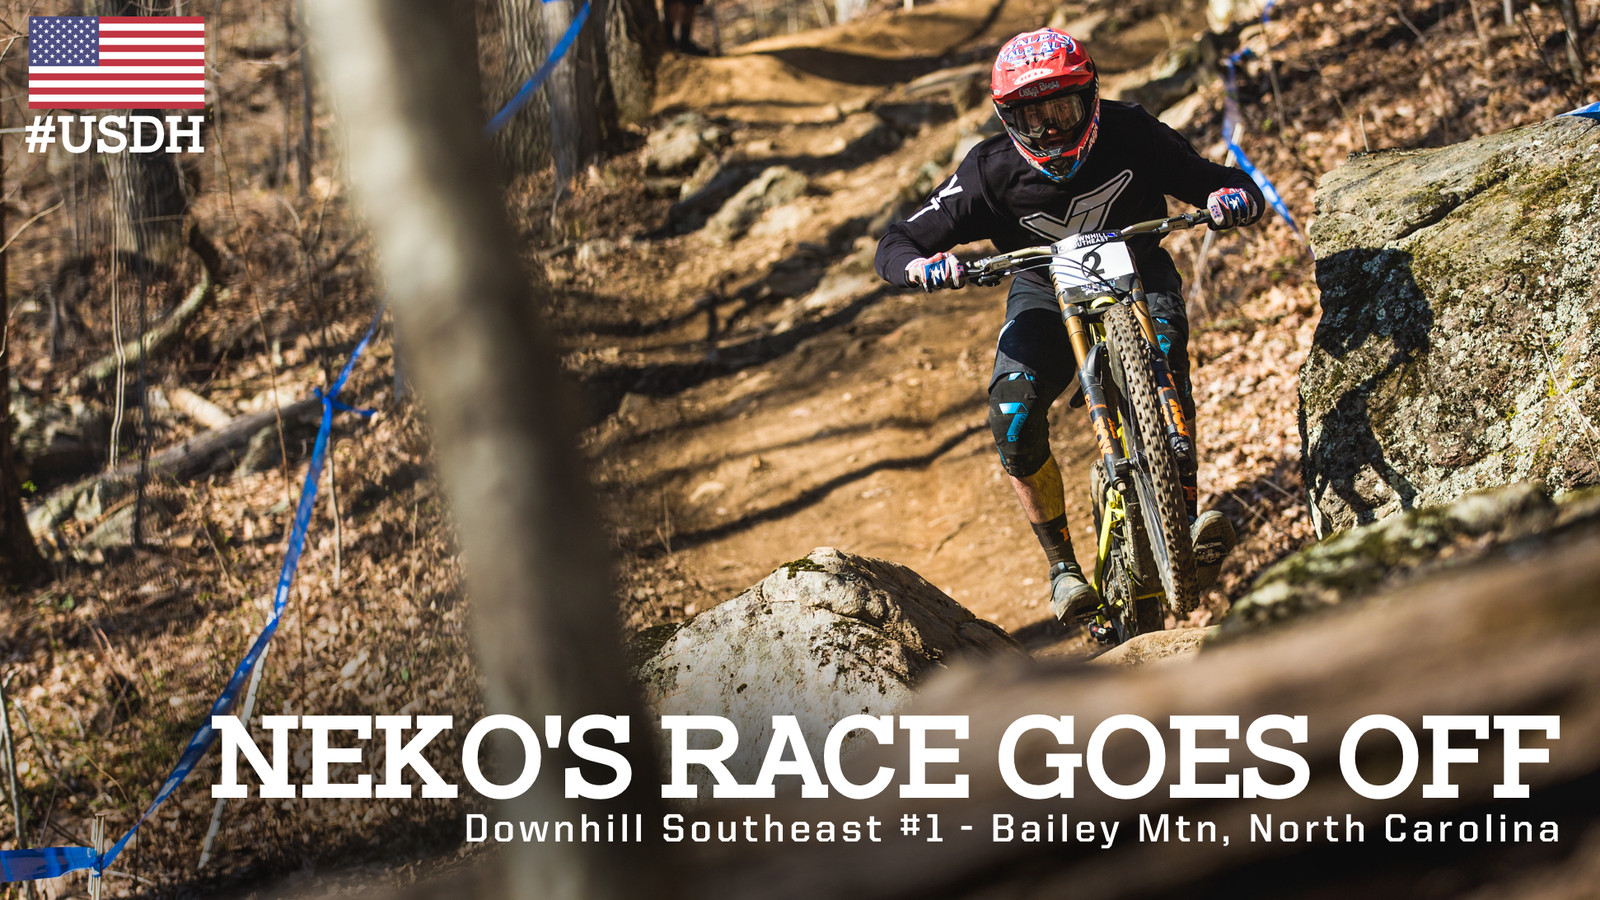 Neko's Race Goes Off - Downhill Southeast at Bailey Mountain